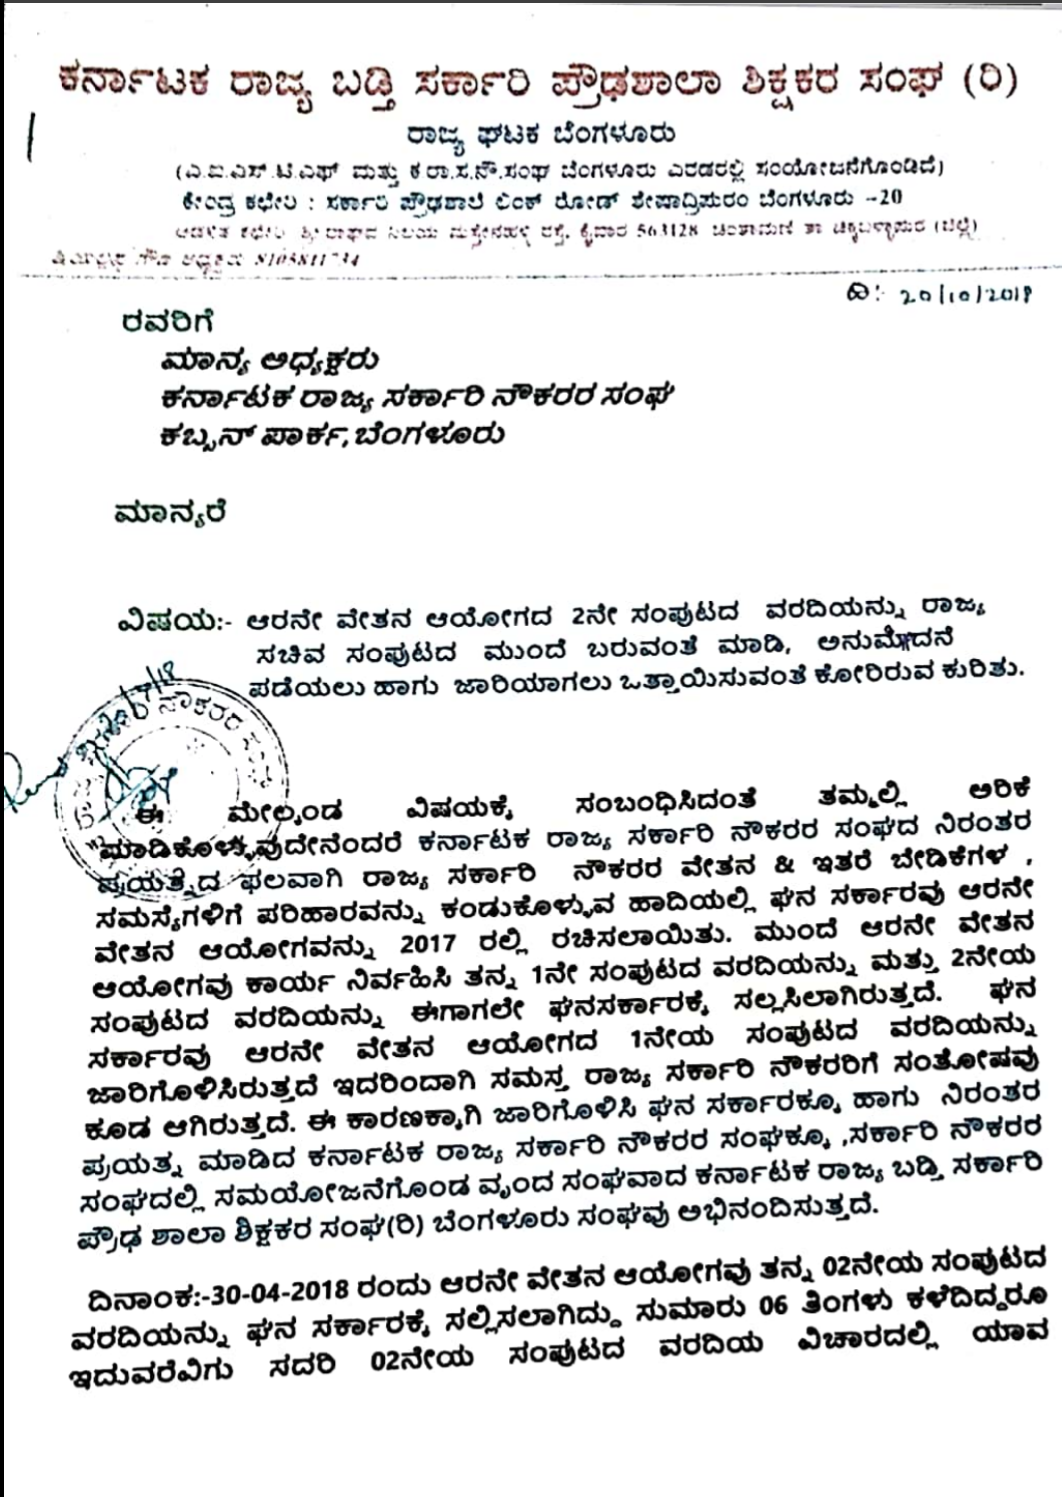 Promotion of the High School Teachers' Association on request to